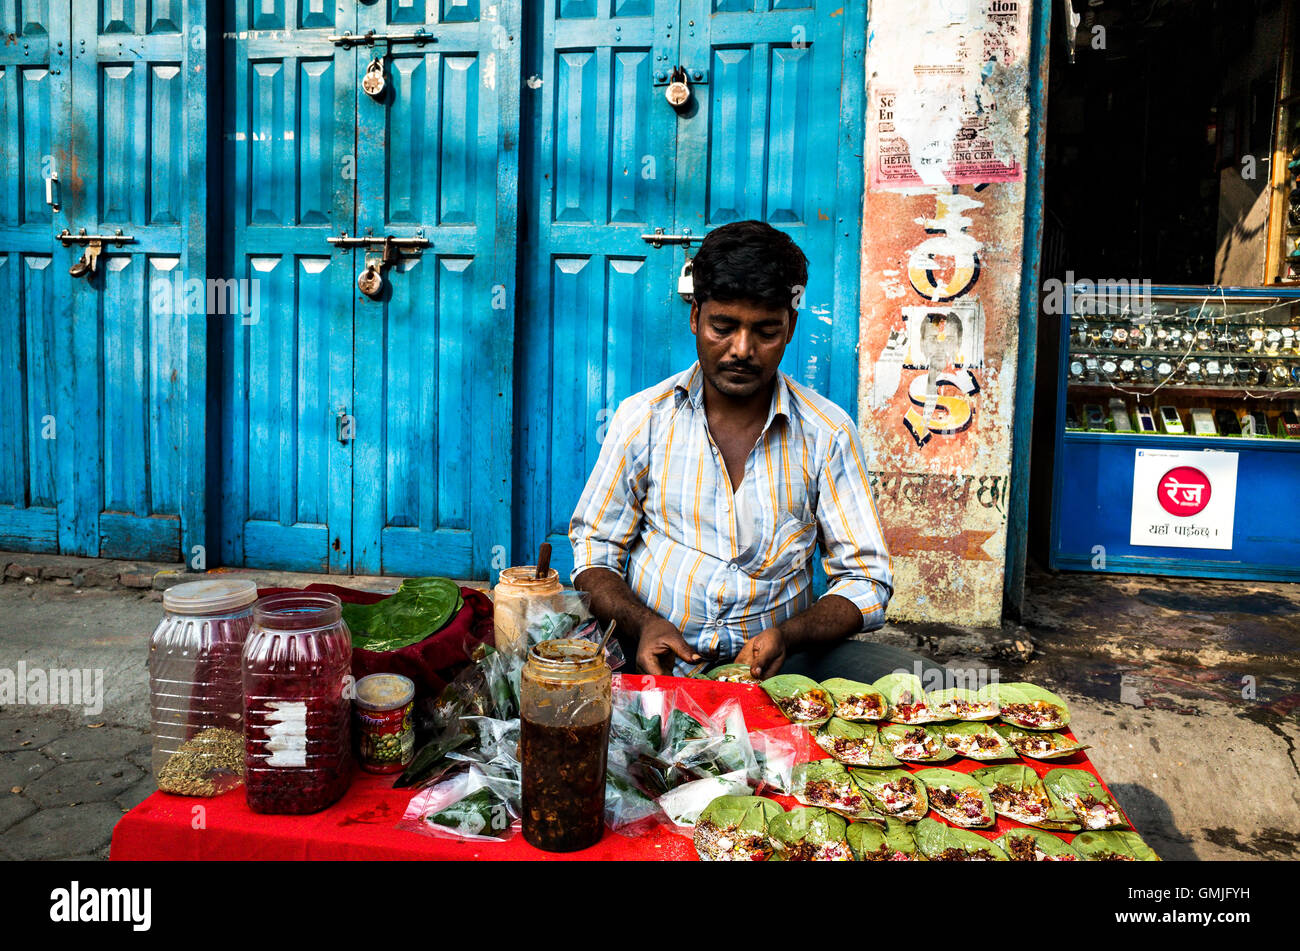 travel portrait of an Indian middle-aged man of 30-40 years old selling Paan in the street - Stock Image